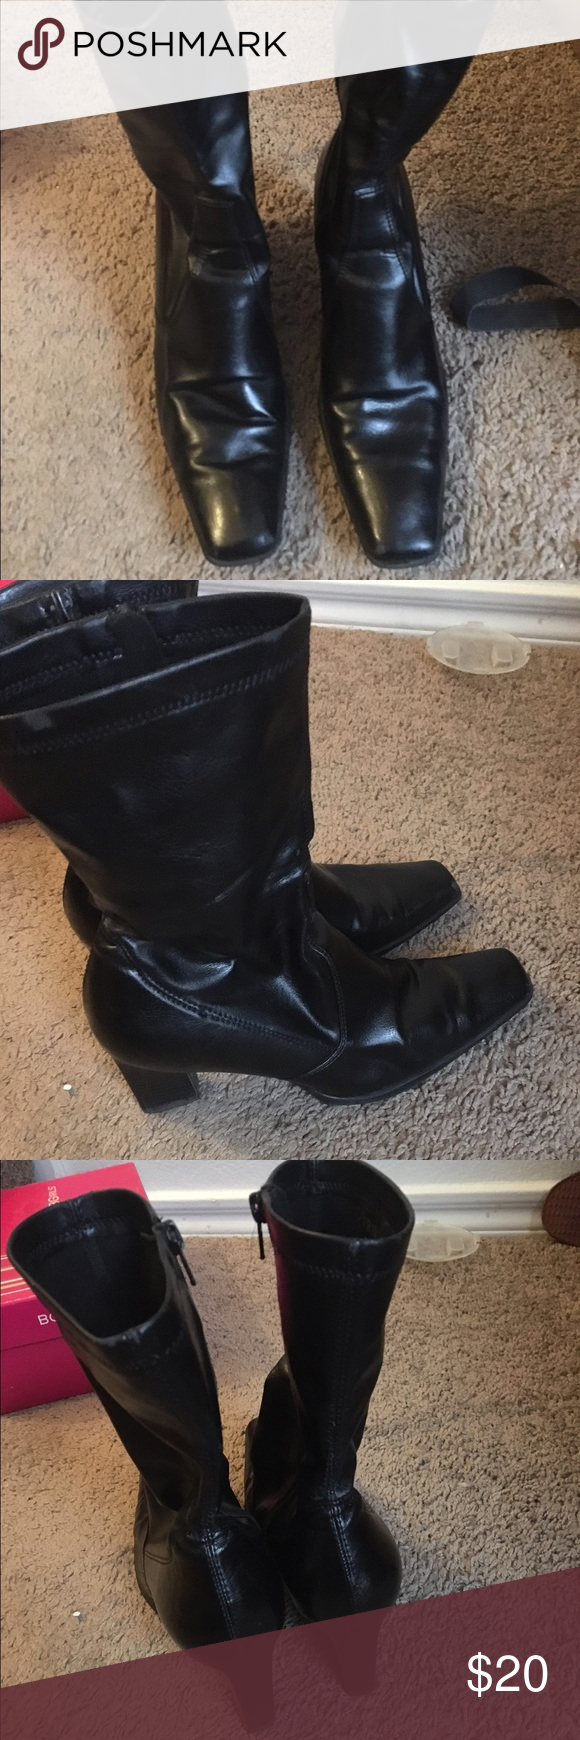 Franco Sarto boots zise 6.5 In good used condition Franco Sarto boots in size 6.5 very comfortable Franco Sarto Shoes Heeled Boots